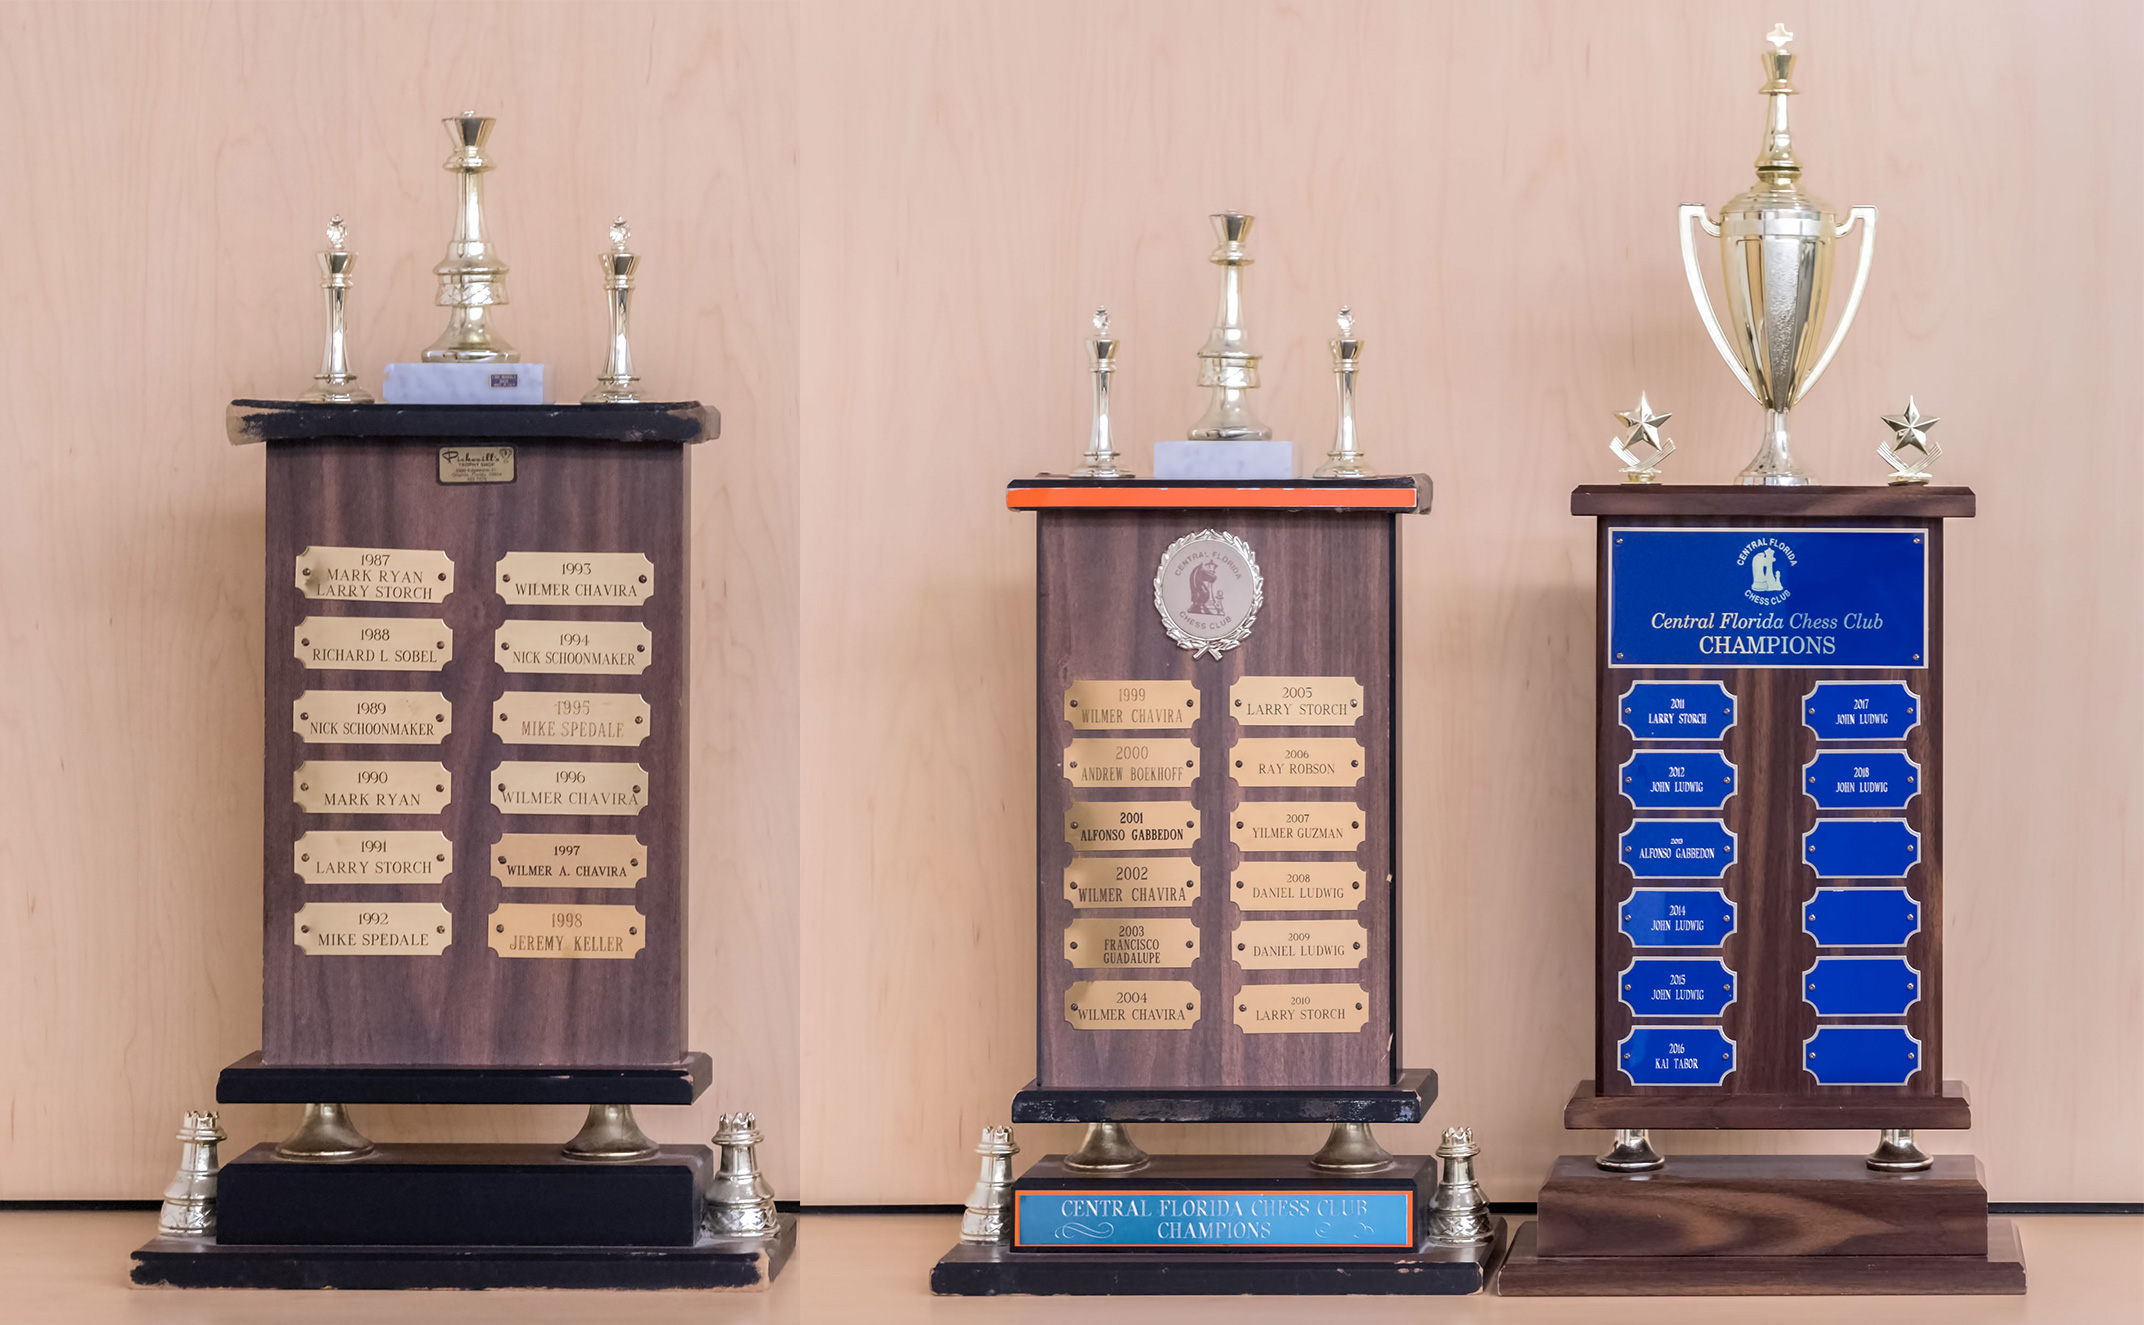 CFCC has hosted over 385 USCF competitive chess tournaments and produced 33 Club Champions since 1987